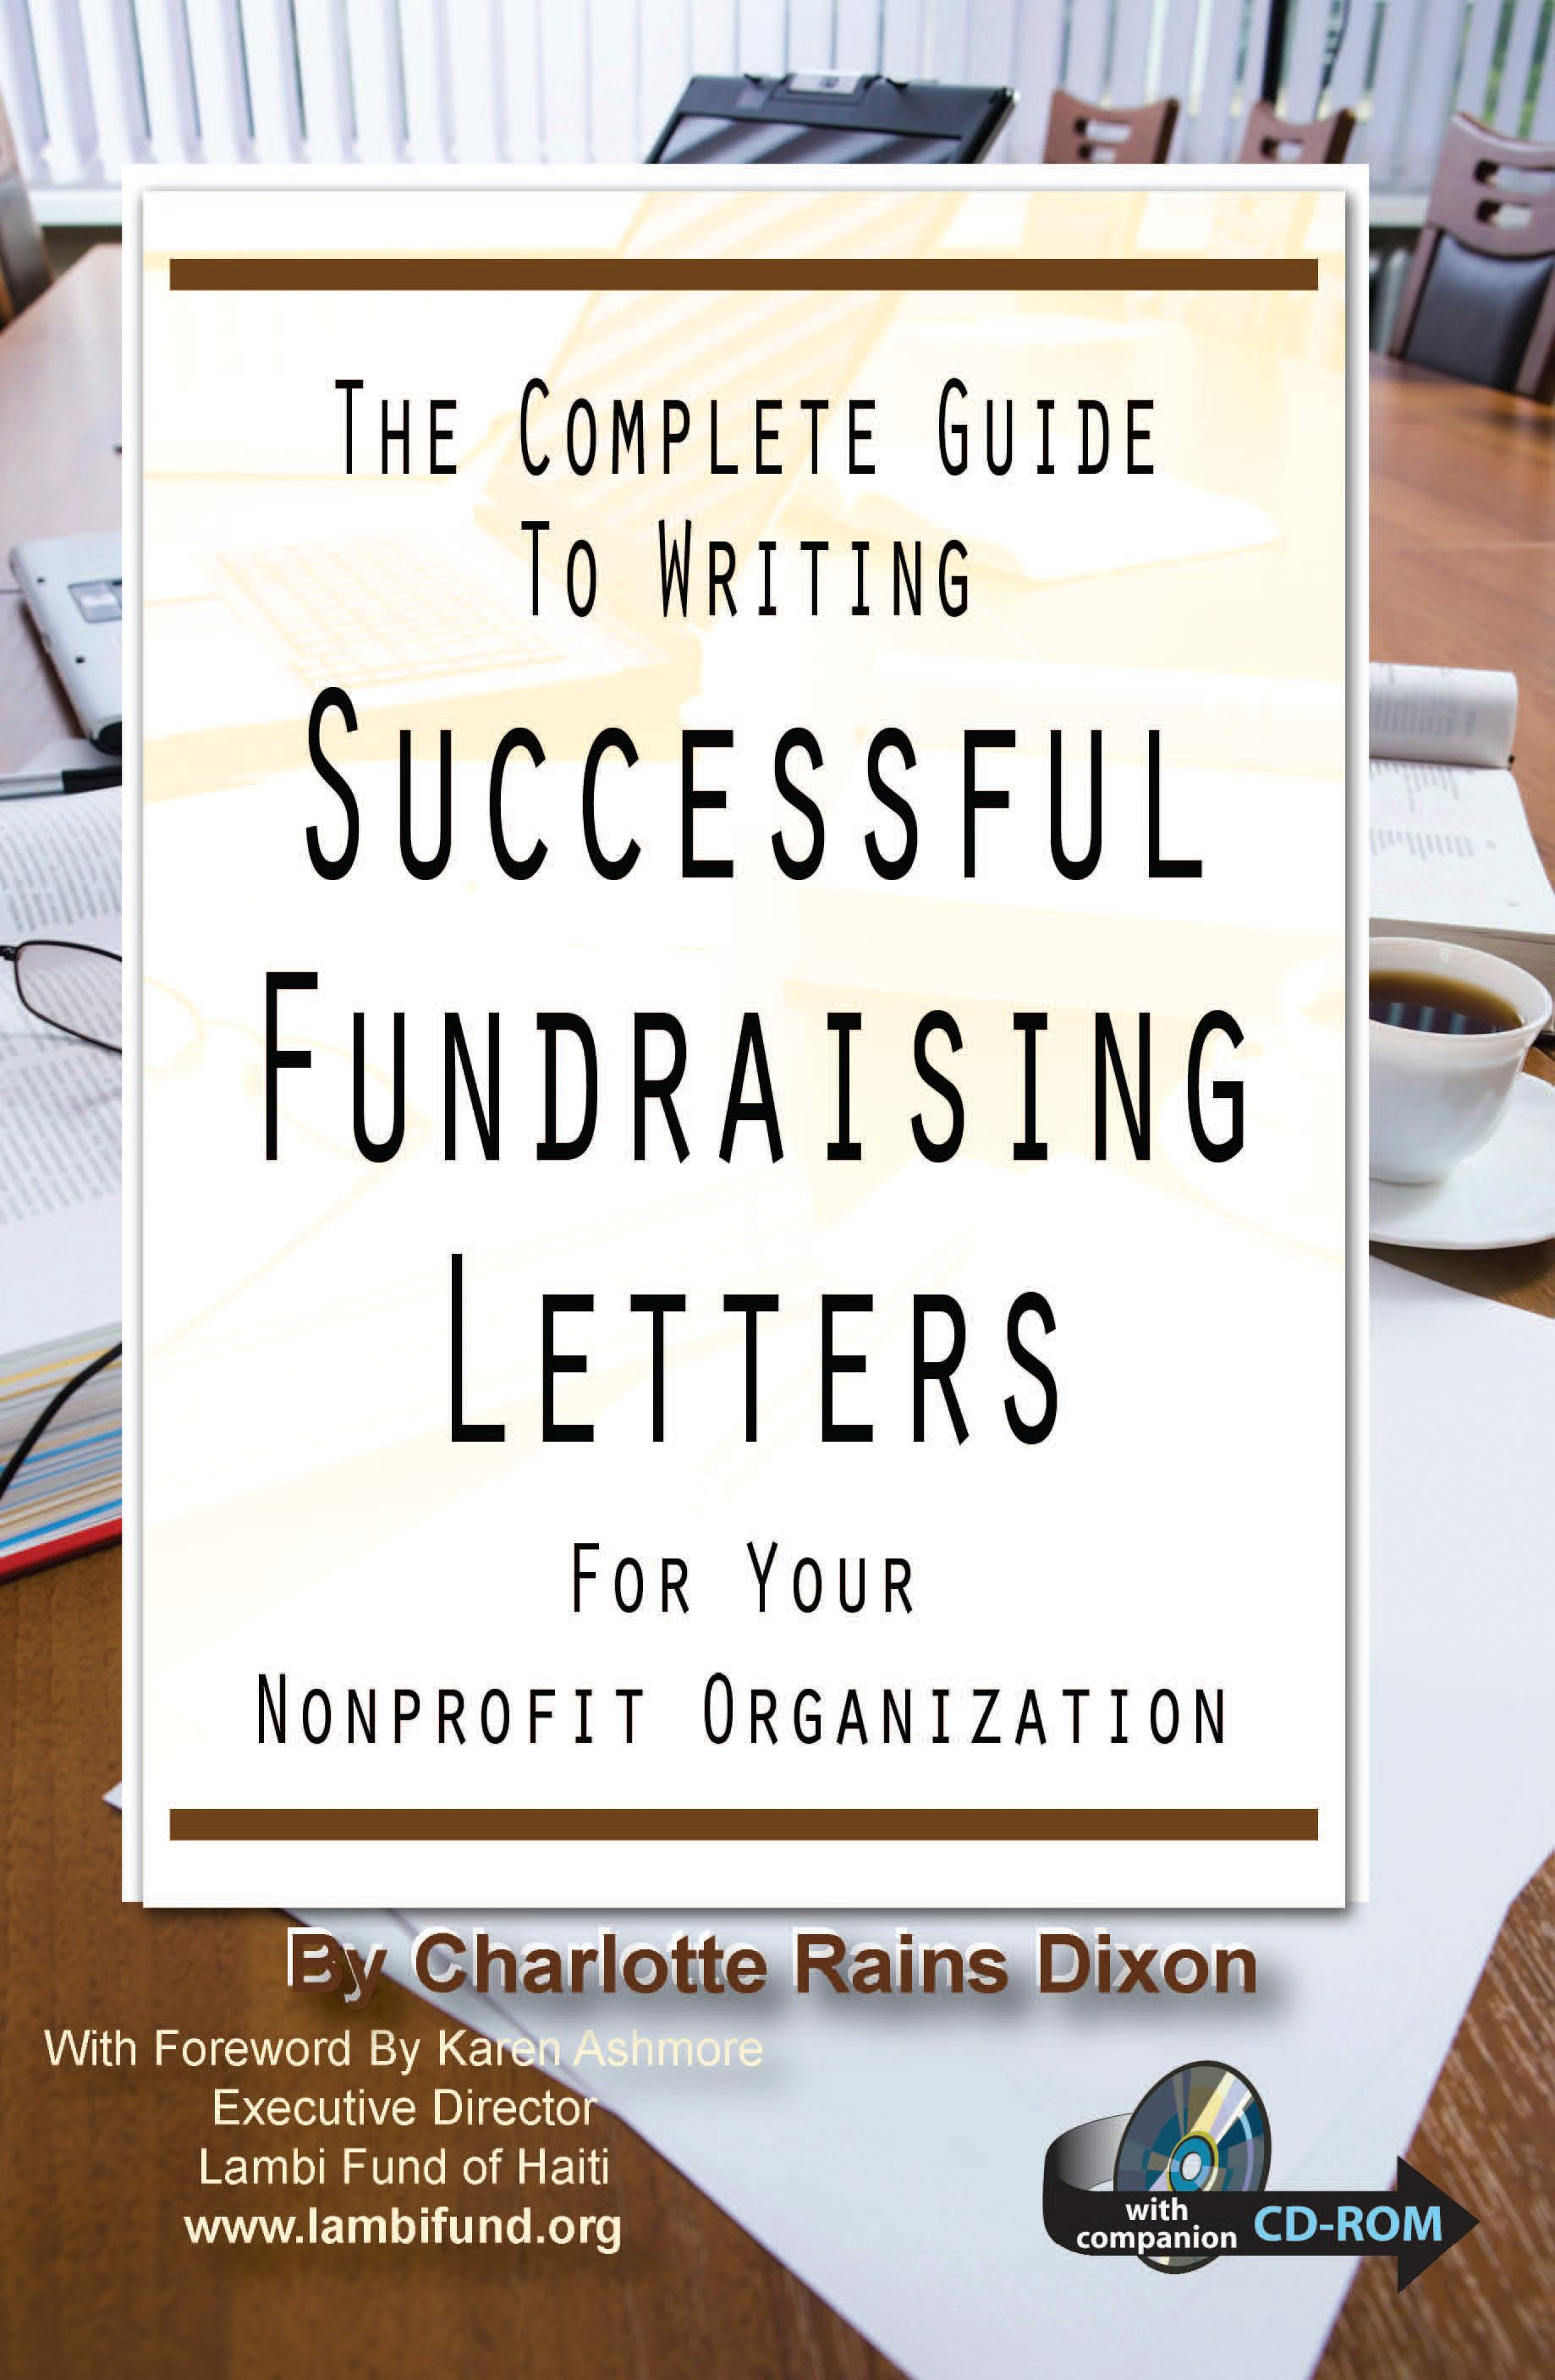 The Complete Guide to Writing Successful Fundraising Letters for Your Nonprofit Organization: With Companion CD-ROM EB2370003891256